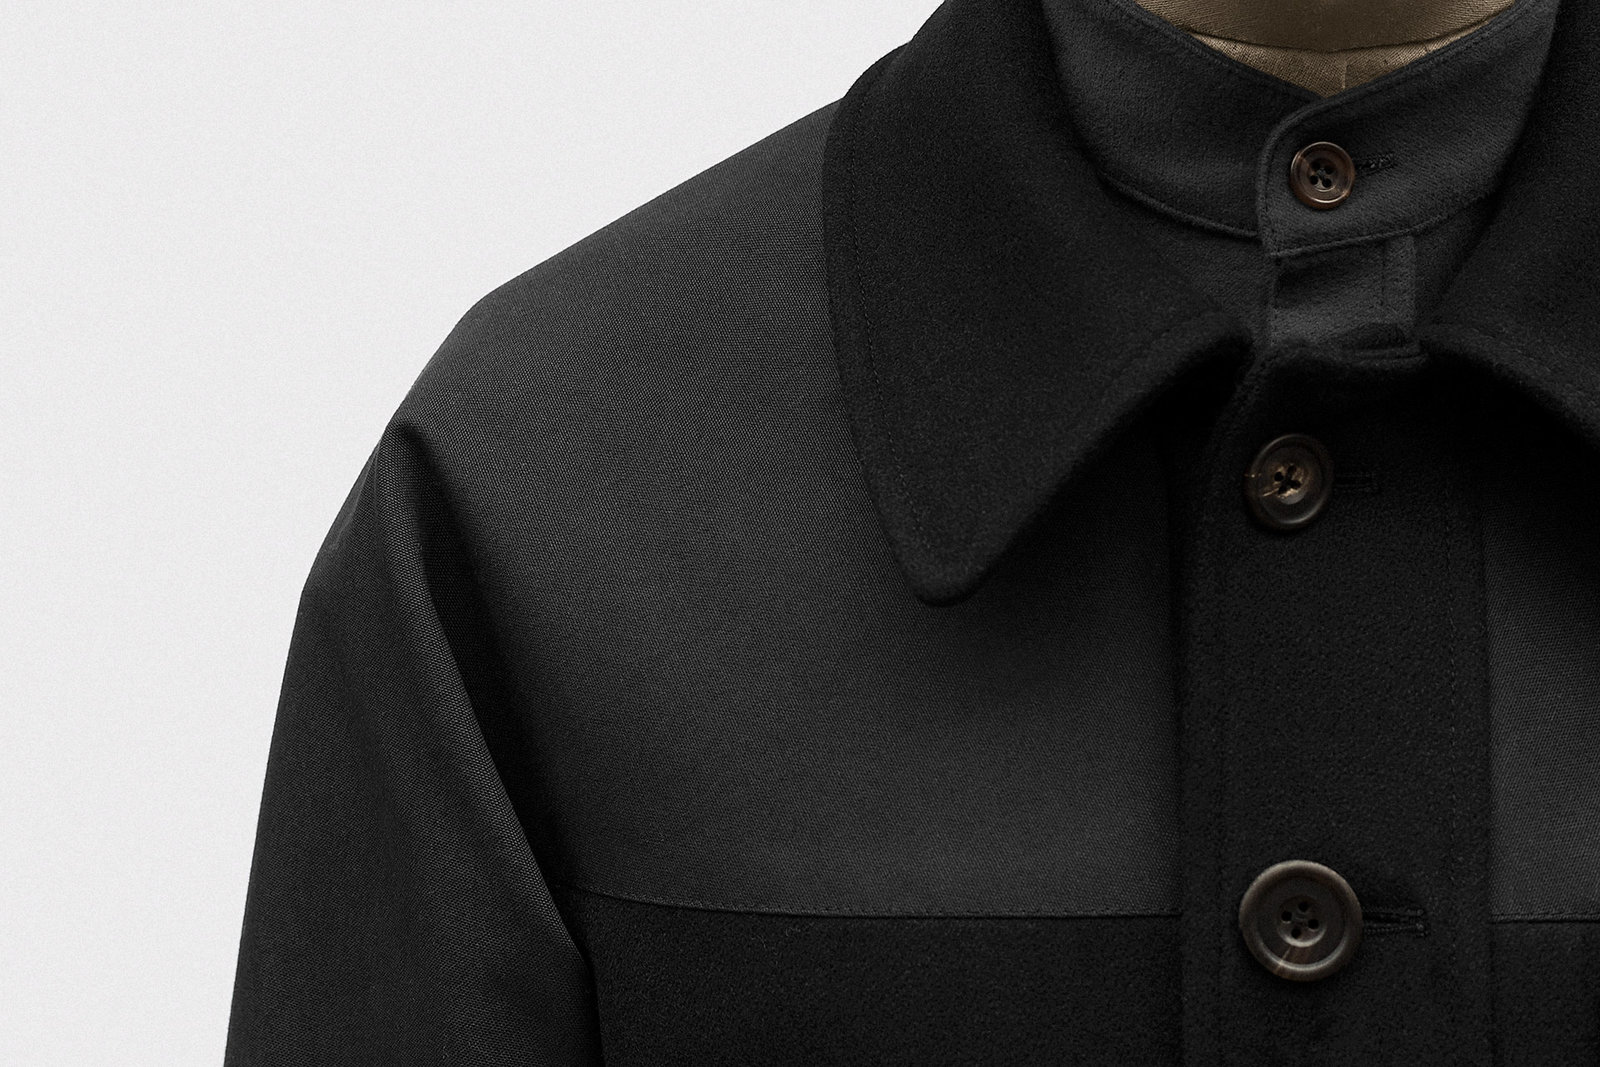 donkey-jacket-woollen-melton-cotton-black-9@2x.jpg